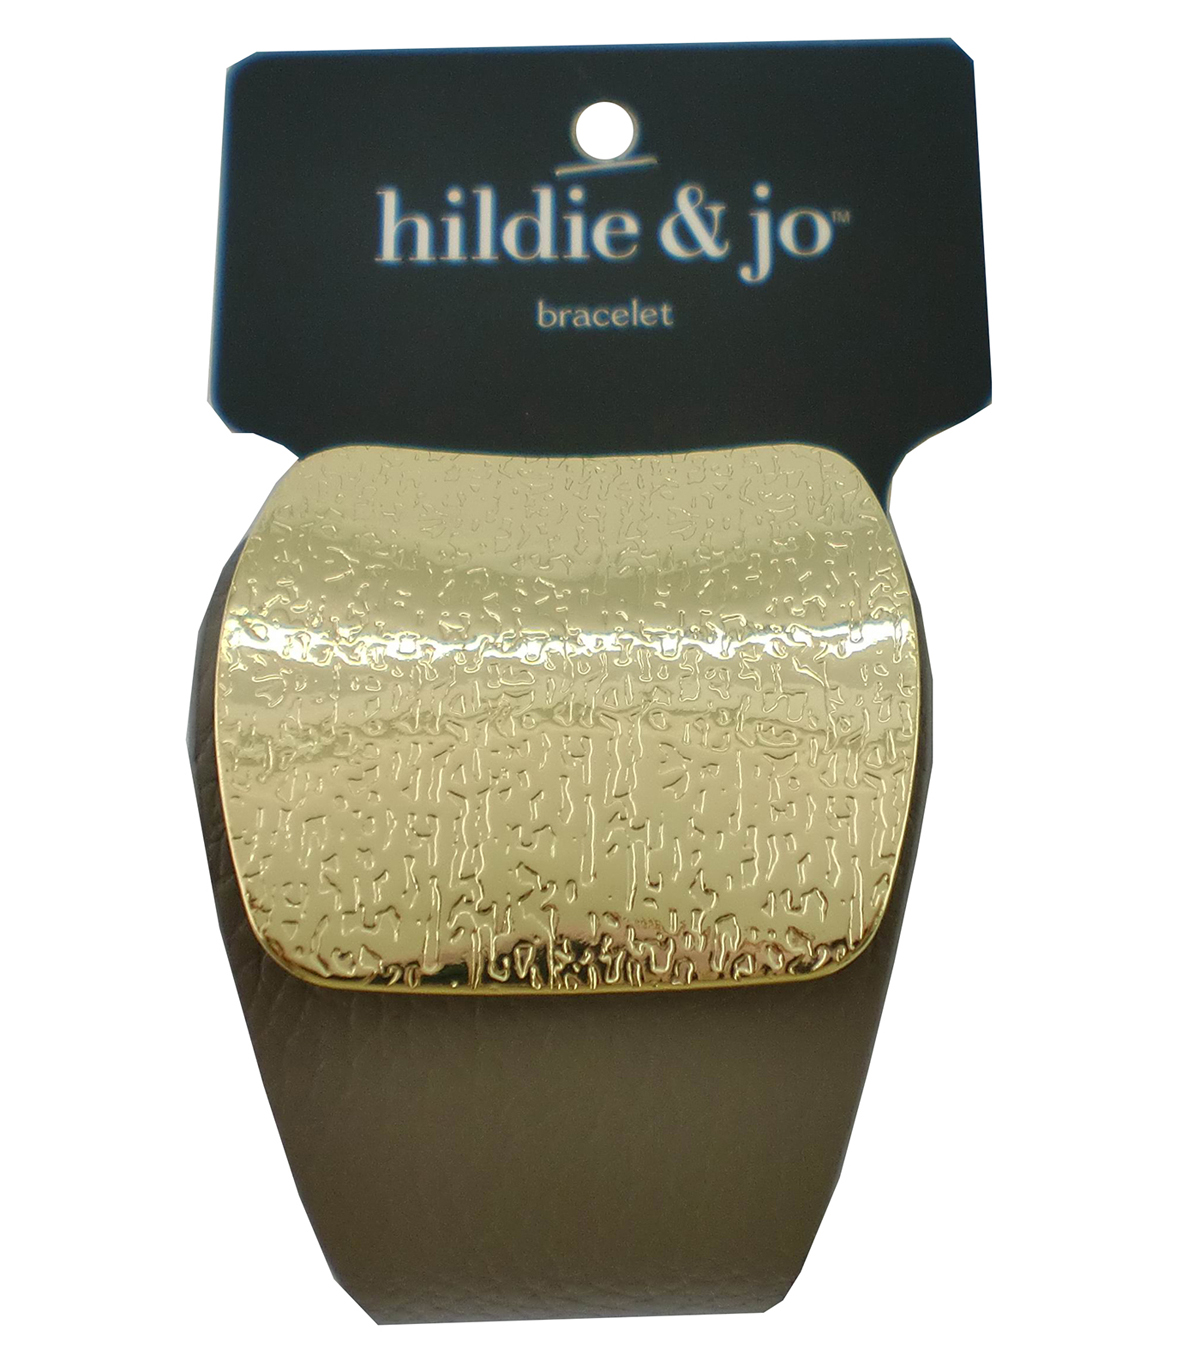 hildie & jo™ Bracelet with Gold Textured Cuff-Gray